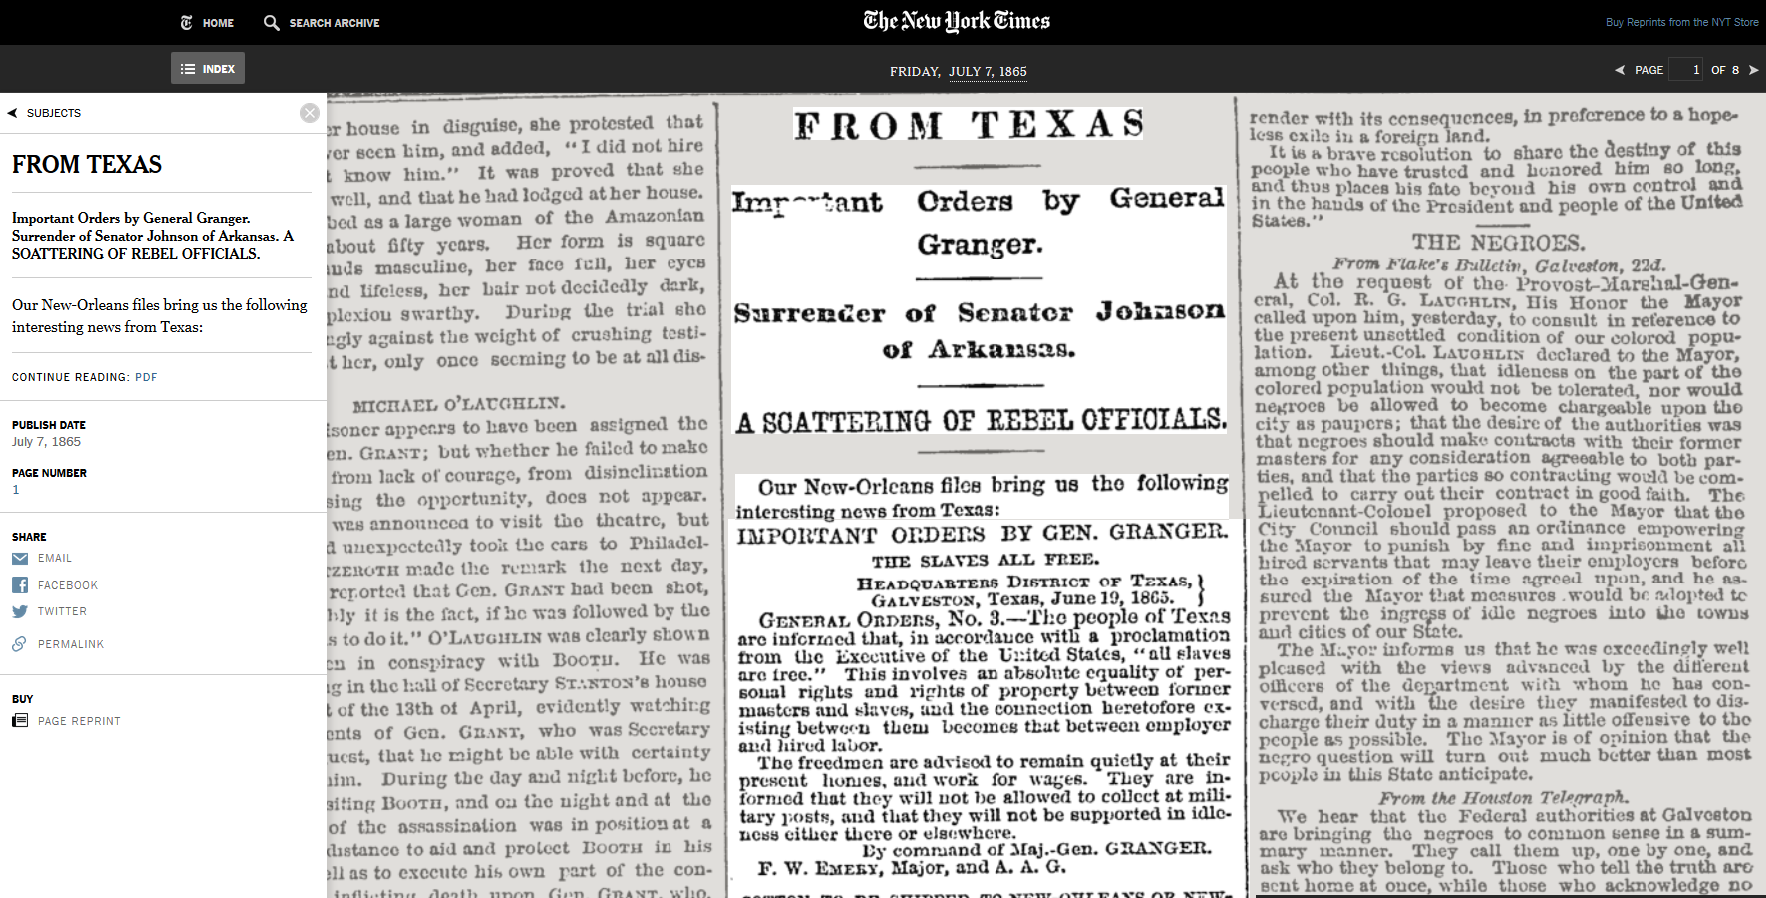 The New York TImes Archive General Granger Order 3 the slaves all free